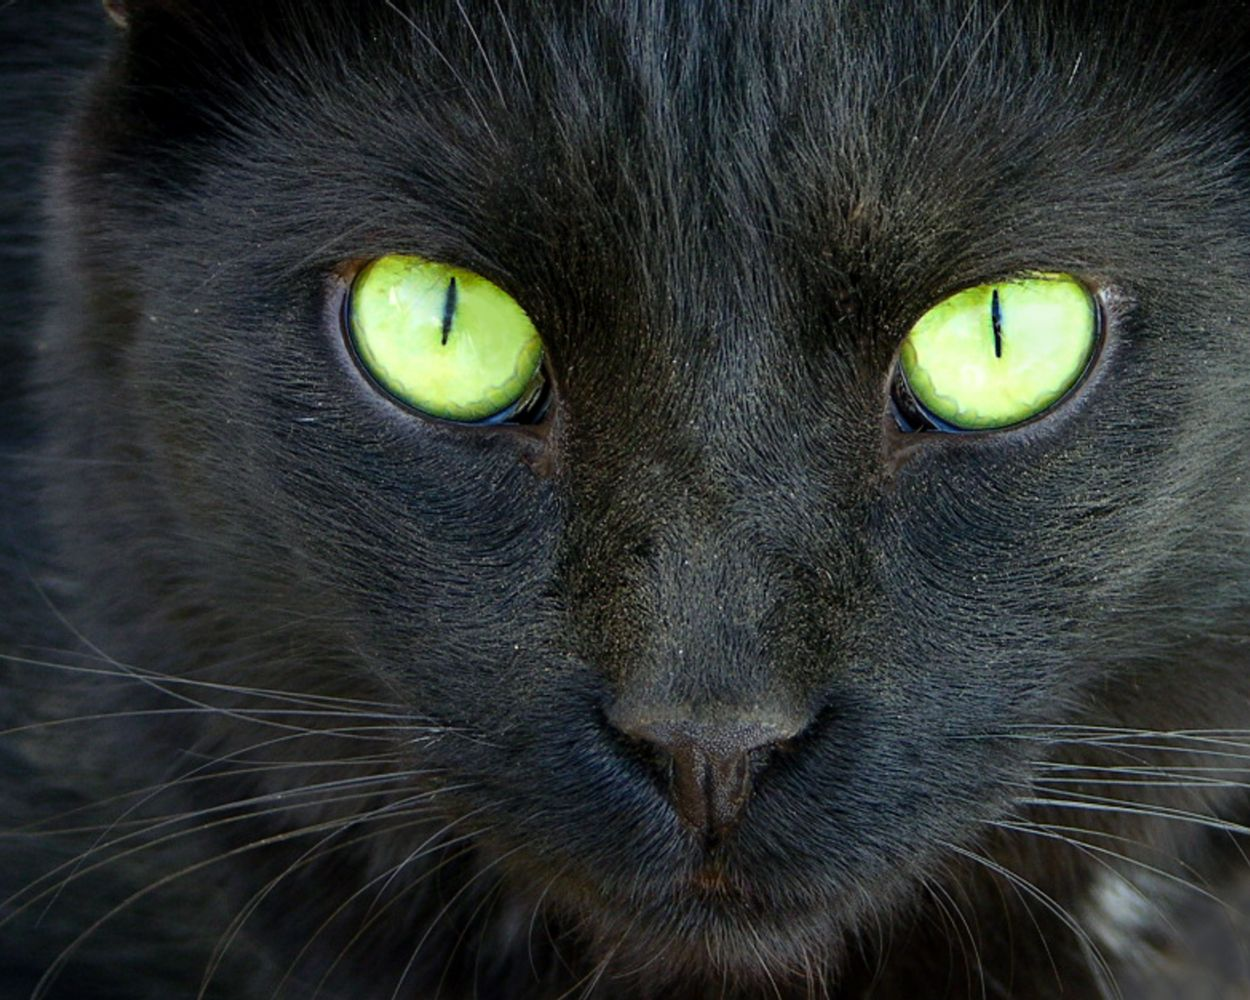 Black Cats With Different Colored Eyes Images 1250x1000